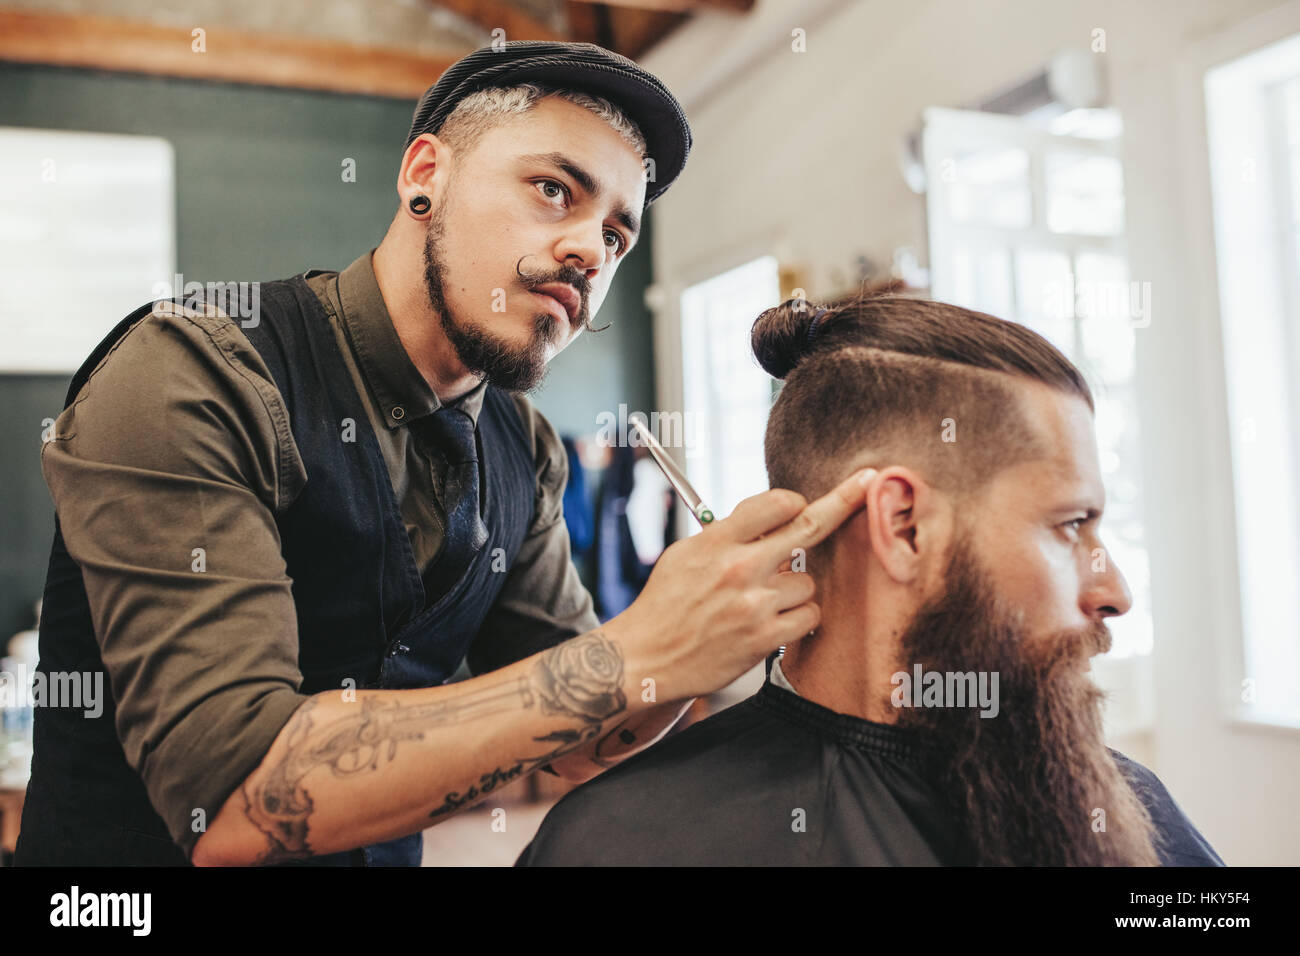 Barber checking symmetry of haircut of his client. Bearded man getting trendy haircut by hairstylist at barbershop - Stock Image